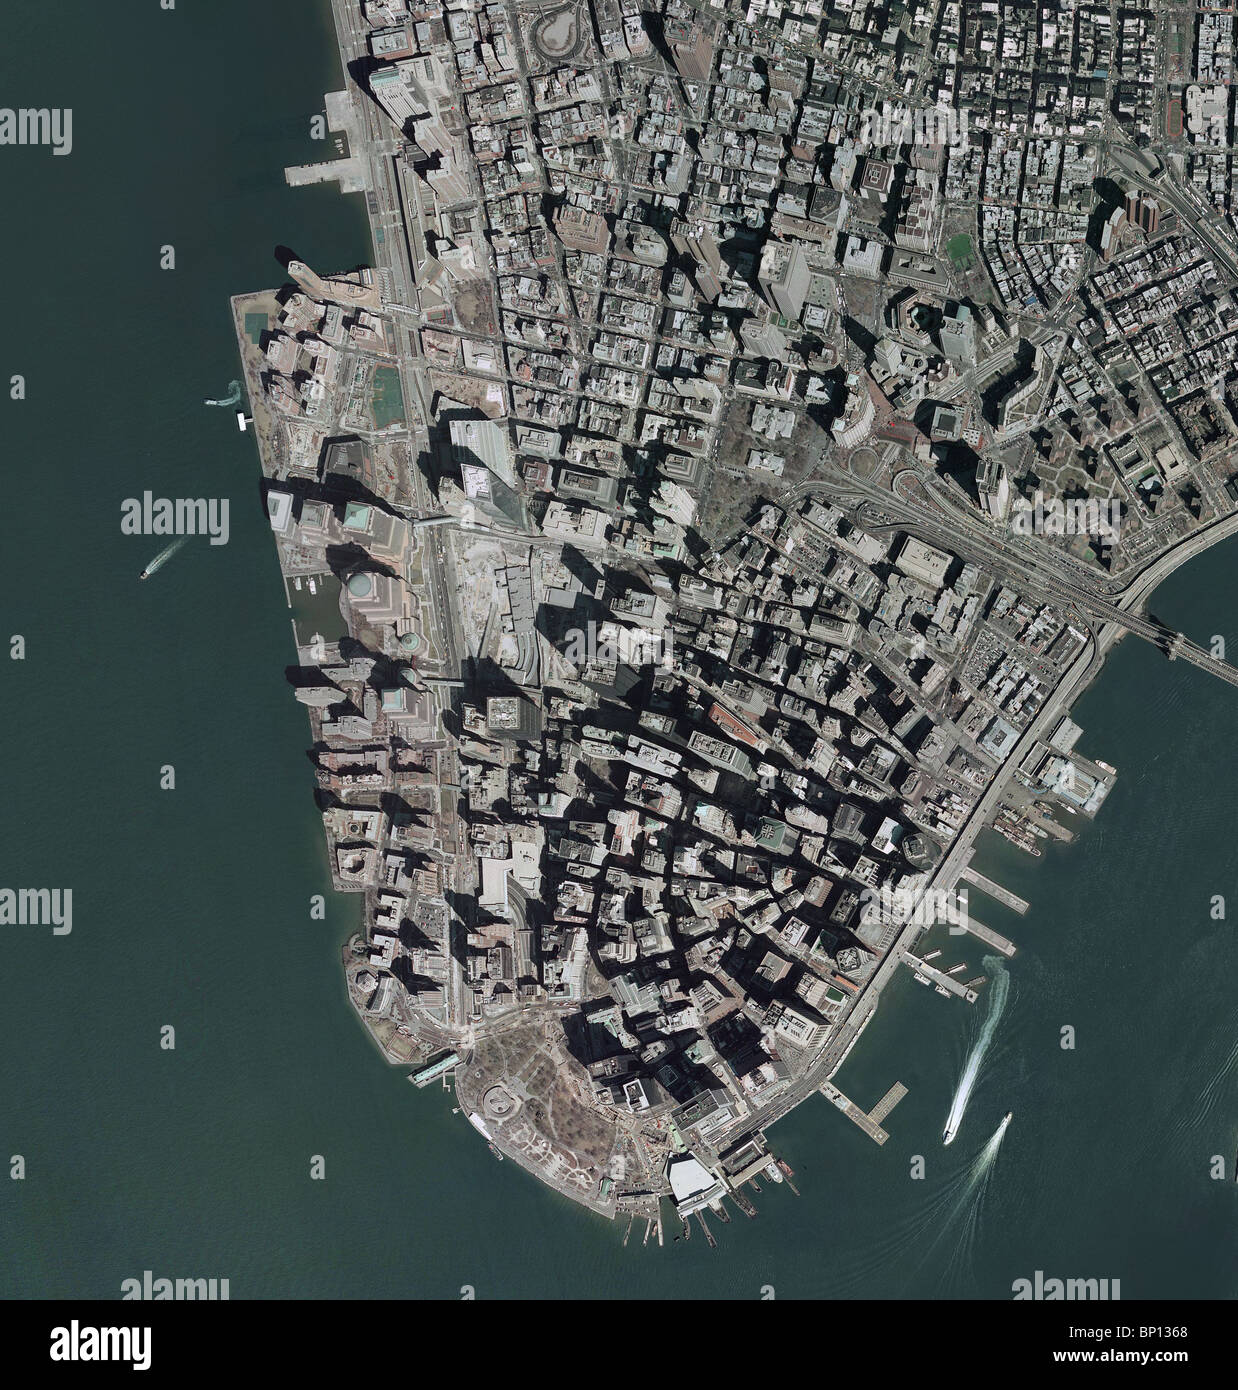 aerial map view above downtown Manhattan New York city Stock Photo